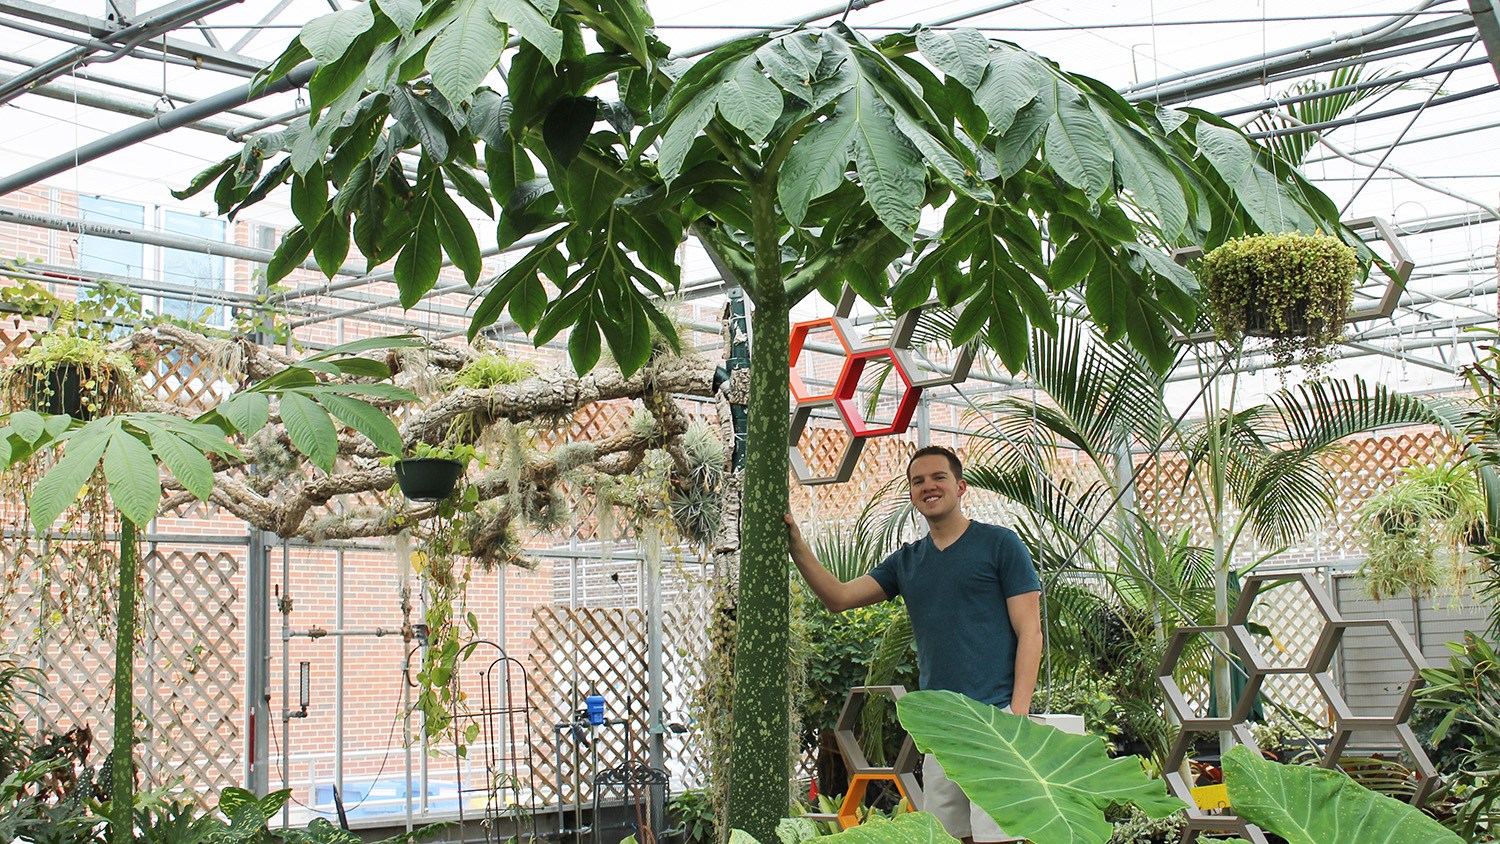 Student standing by a large tree-like plant.